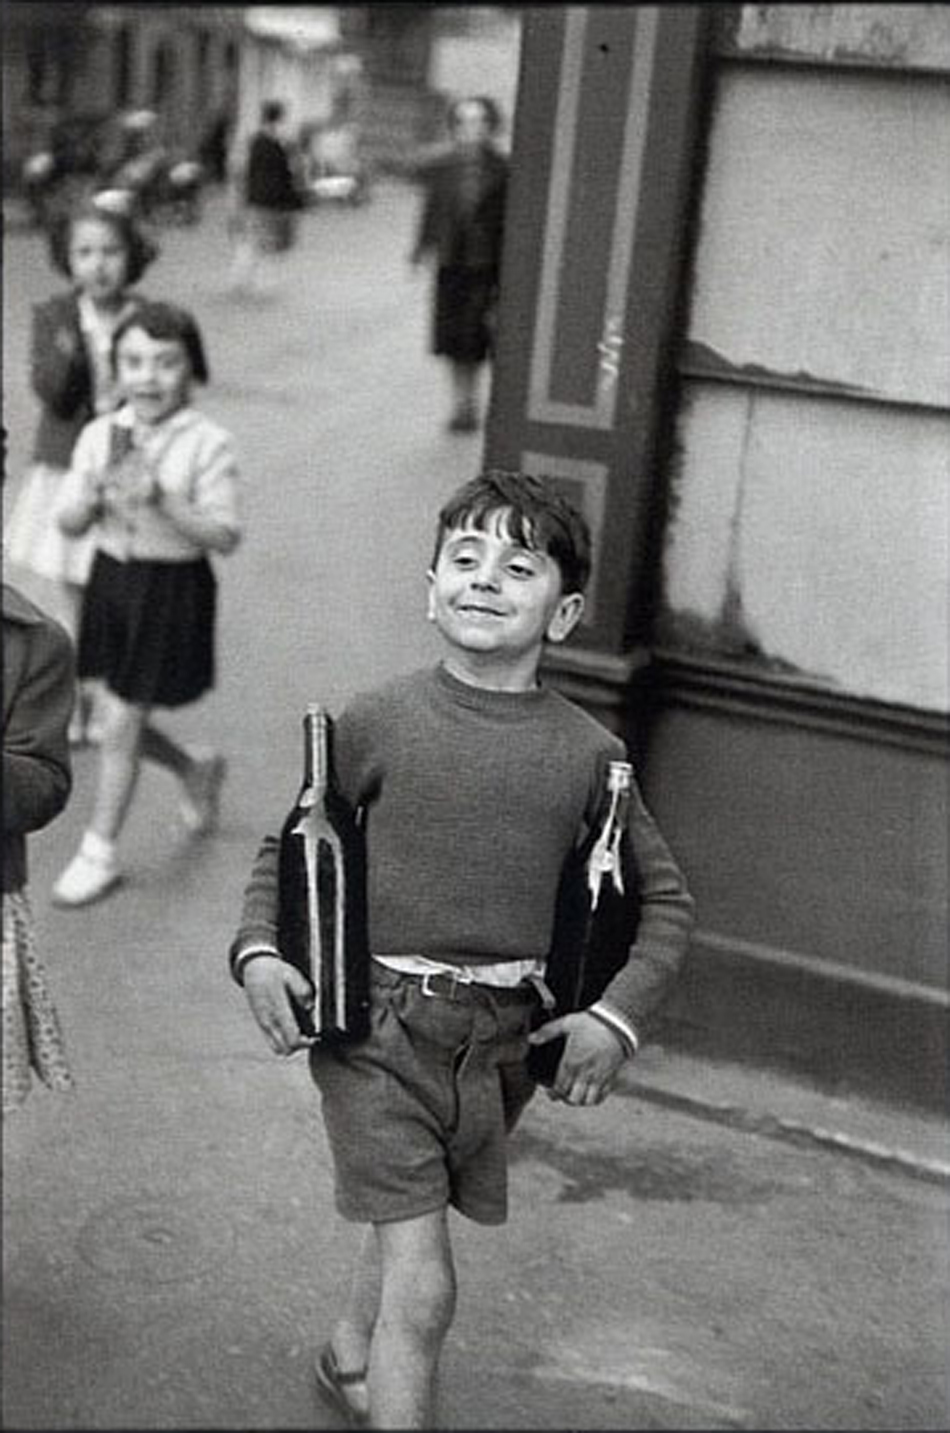 Henri cartier bresson and his photography